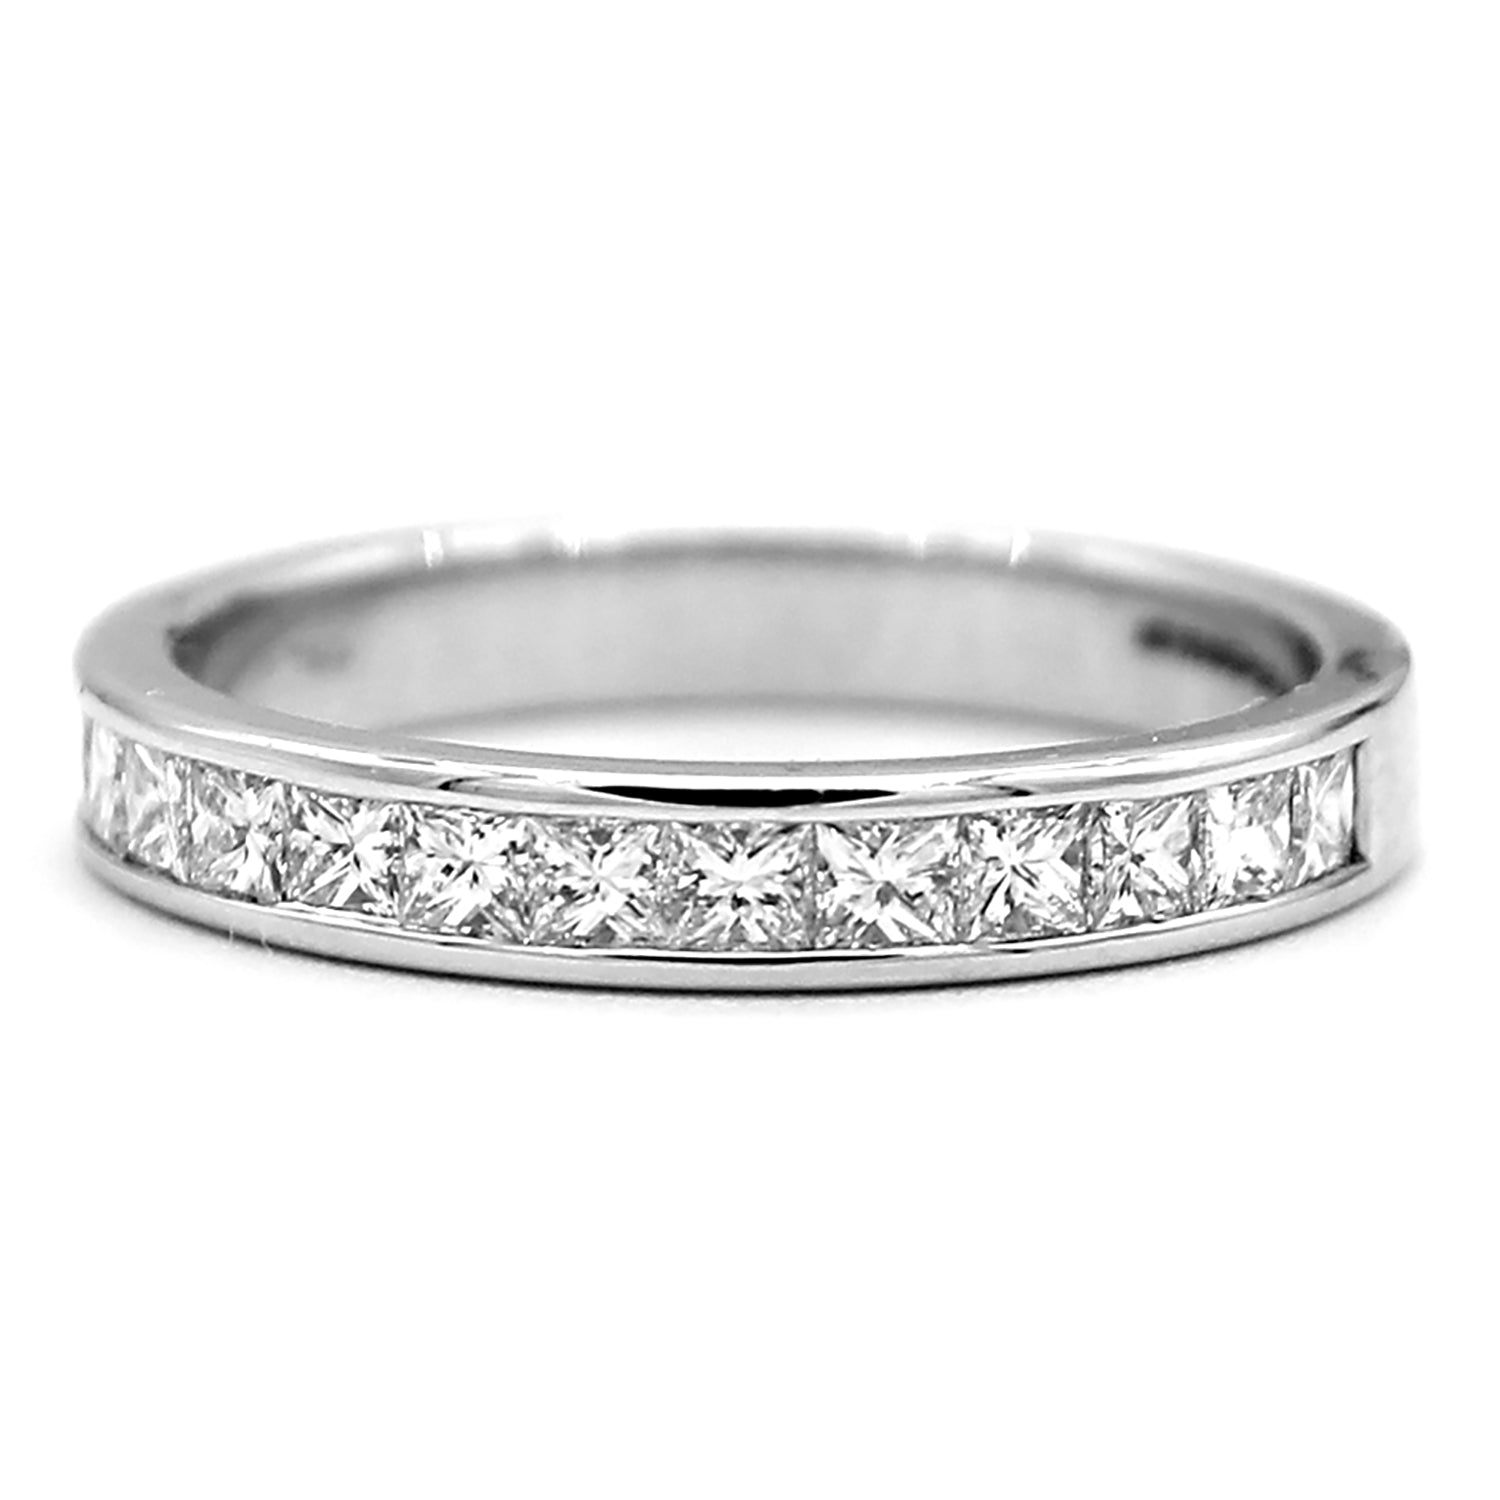 ring pi princess wedding band cut engagement solitaire with setting ringspotters bezel eternity cushion bands